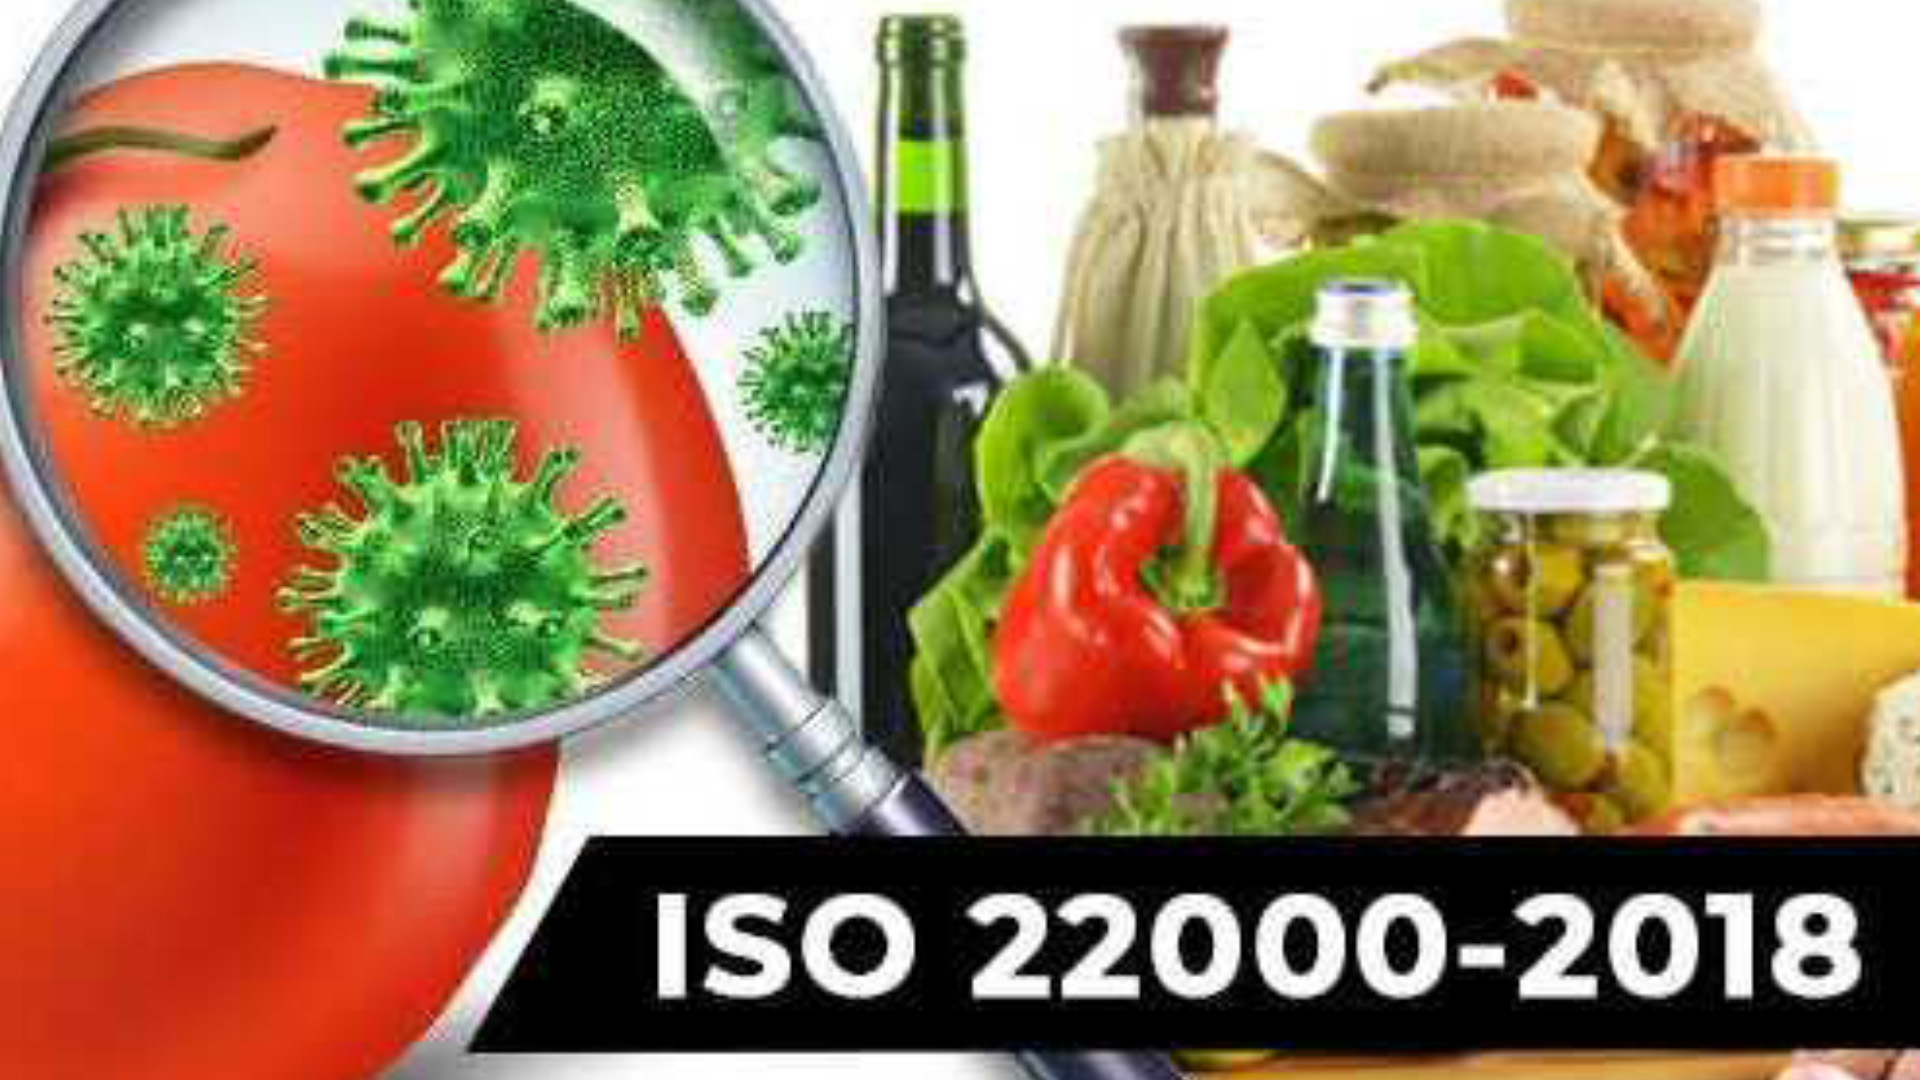 ISO 22000:2018 (FSMS) Foundation Training Course